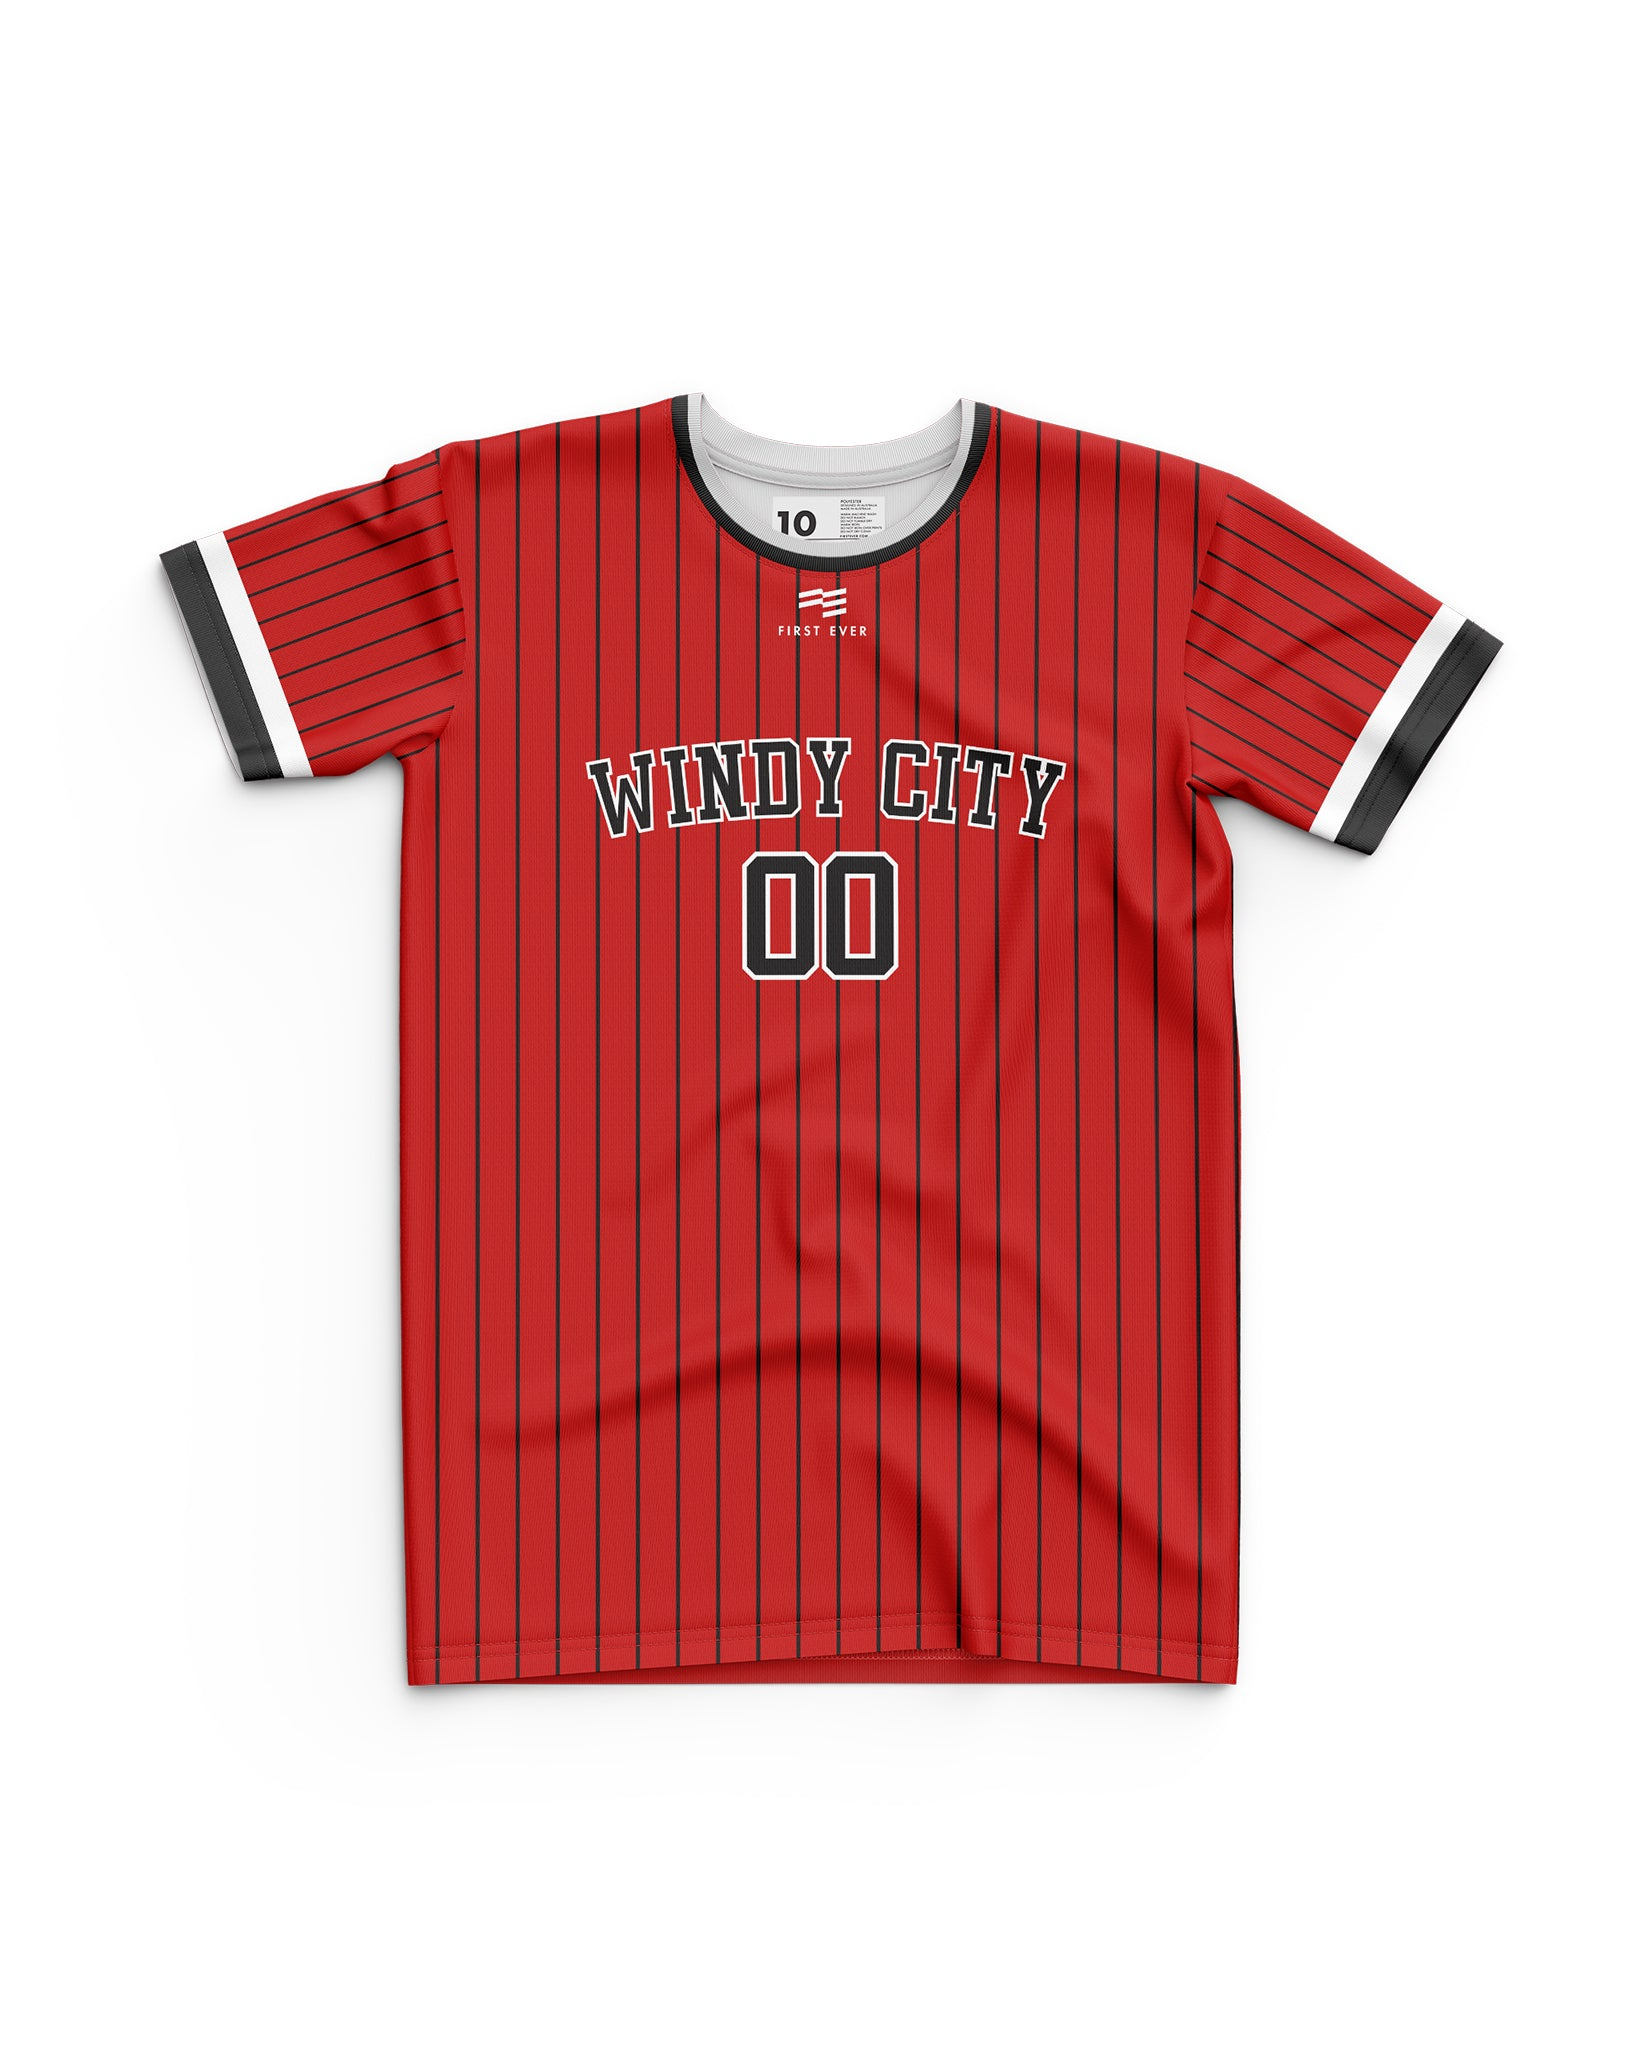 Windy City Shooting Shirt - Youth